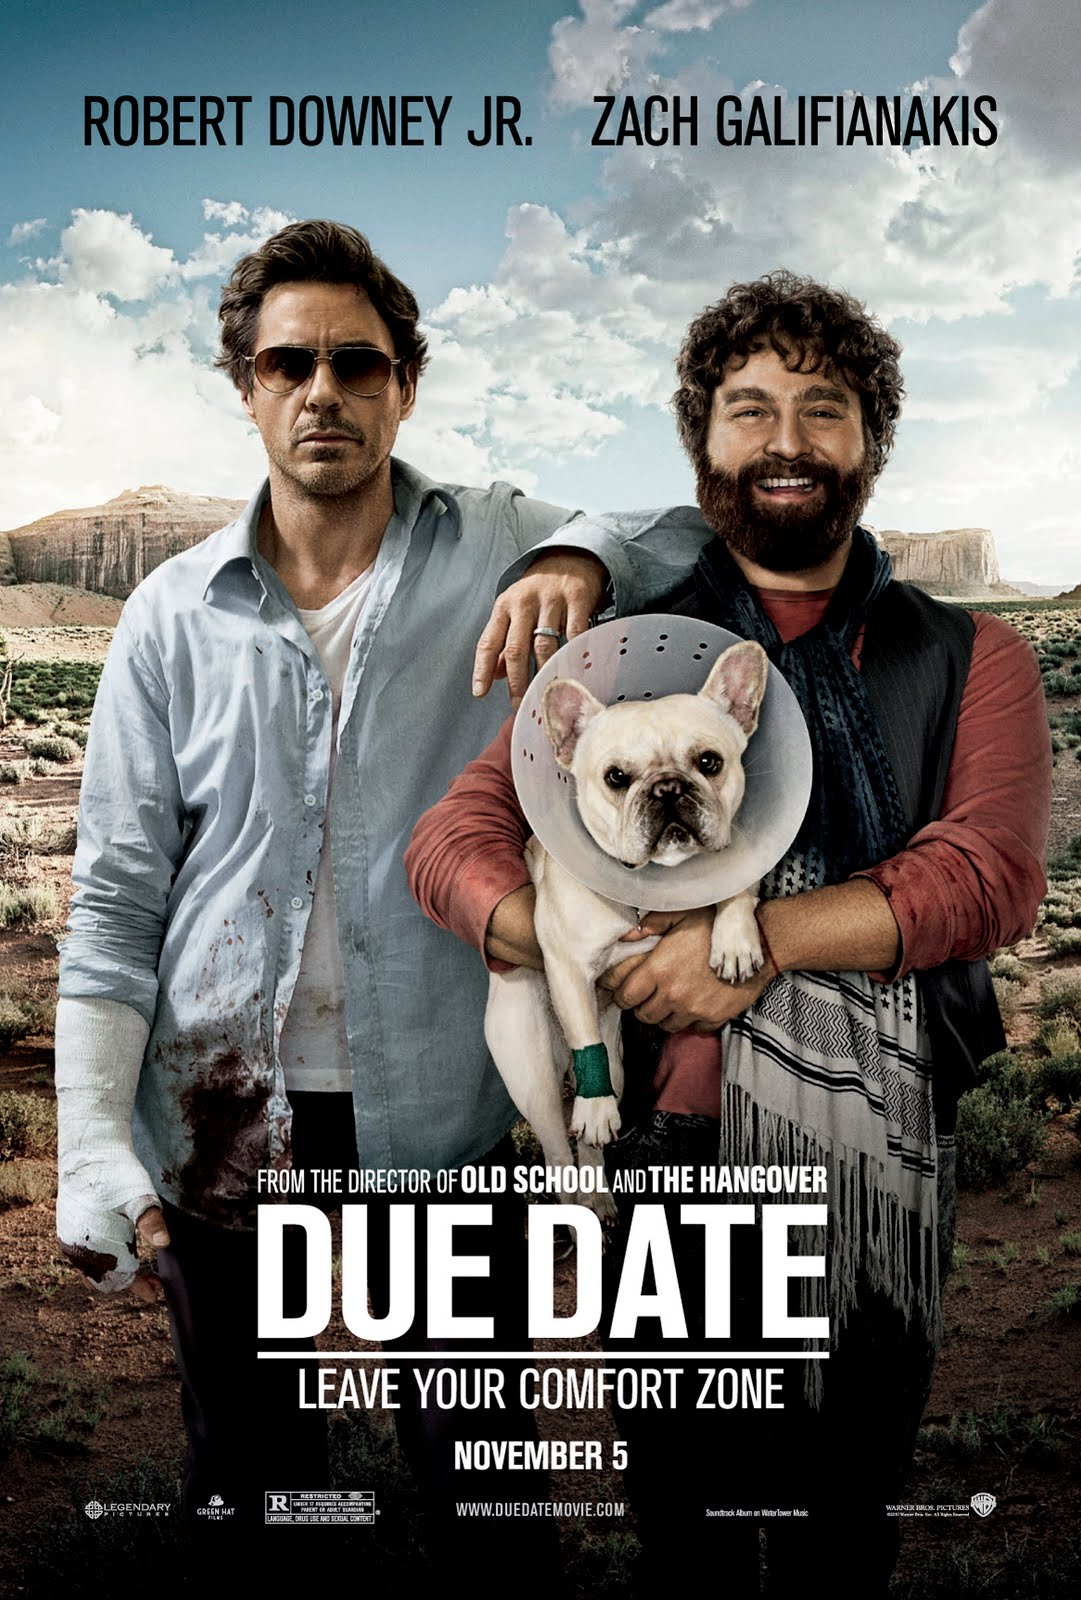 Due-Date-Movie-Poster-Robert-Downey-Jr-Zac-Galifianakis.jpg